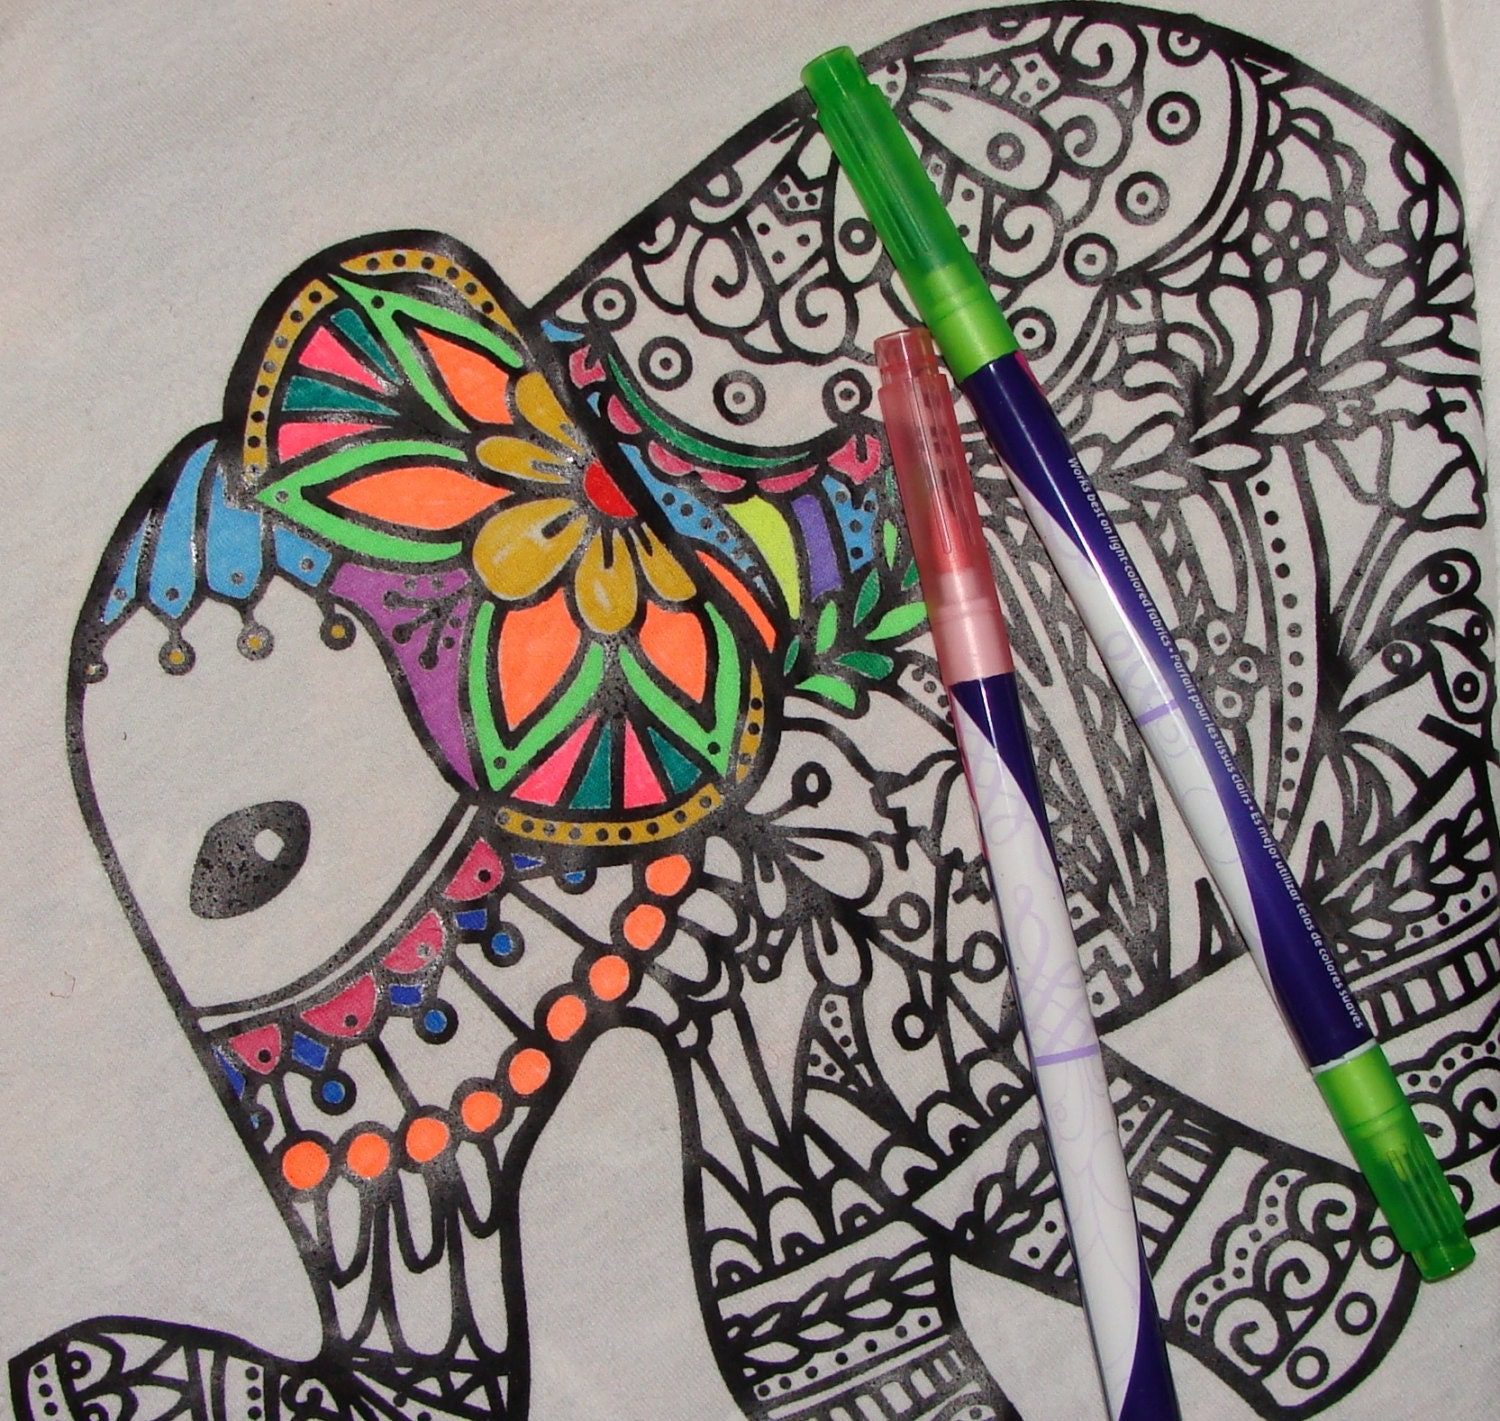 Design your own t-shirt coloring page - Letter M Transfer Iron On Heat Press Adult Coloring Page Zendoodle For T Shirts Totes Diy Color With Fabric Markers Personalized Party Favor